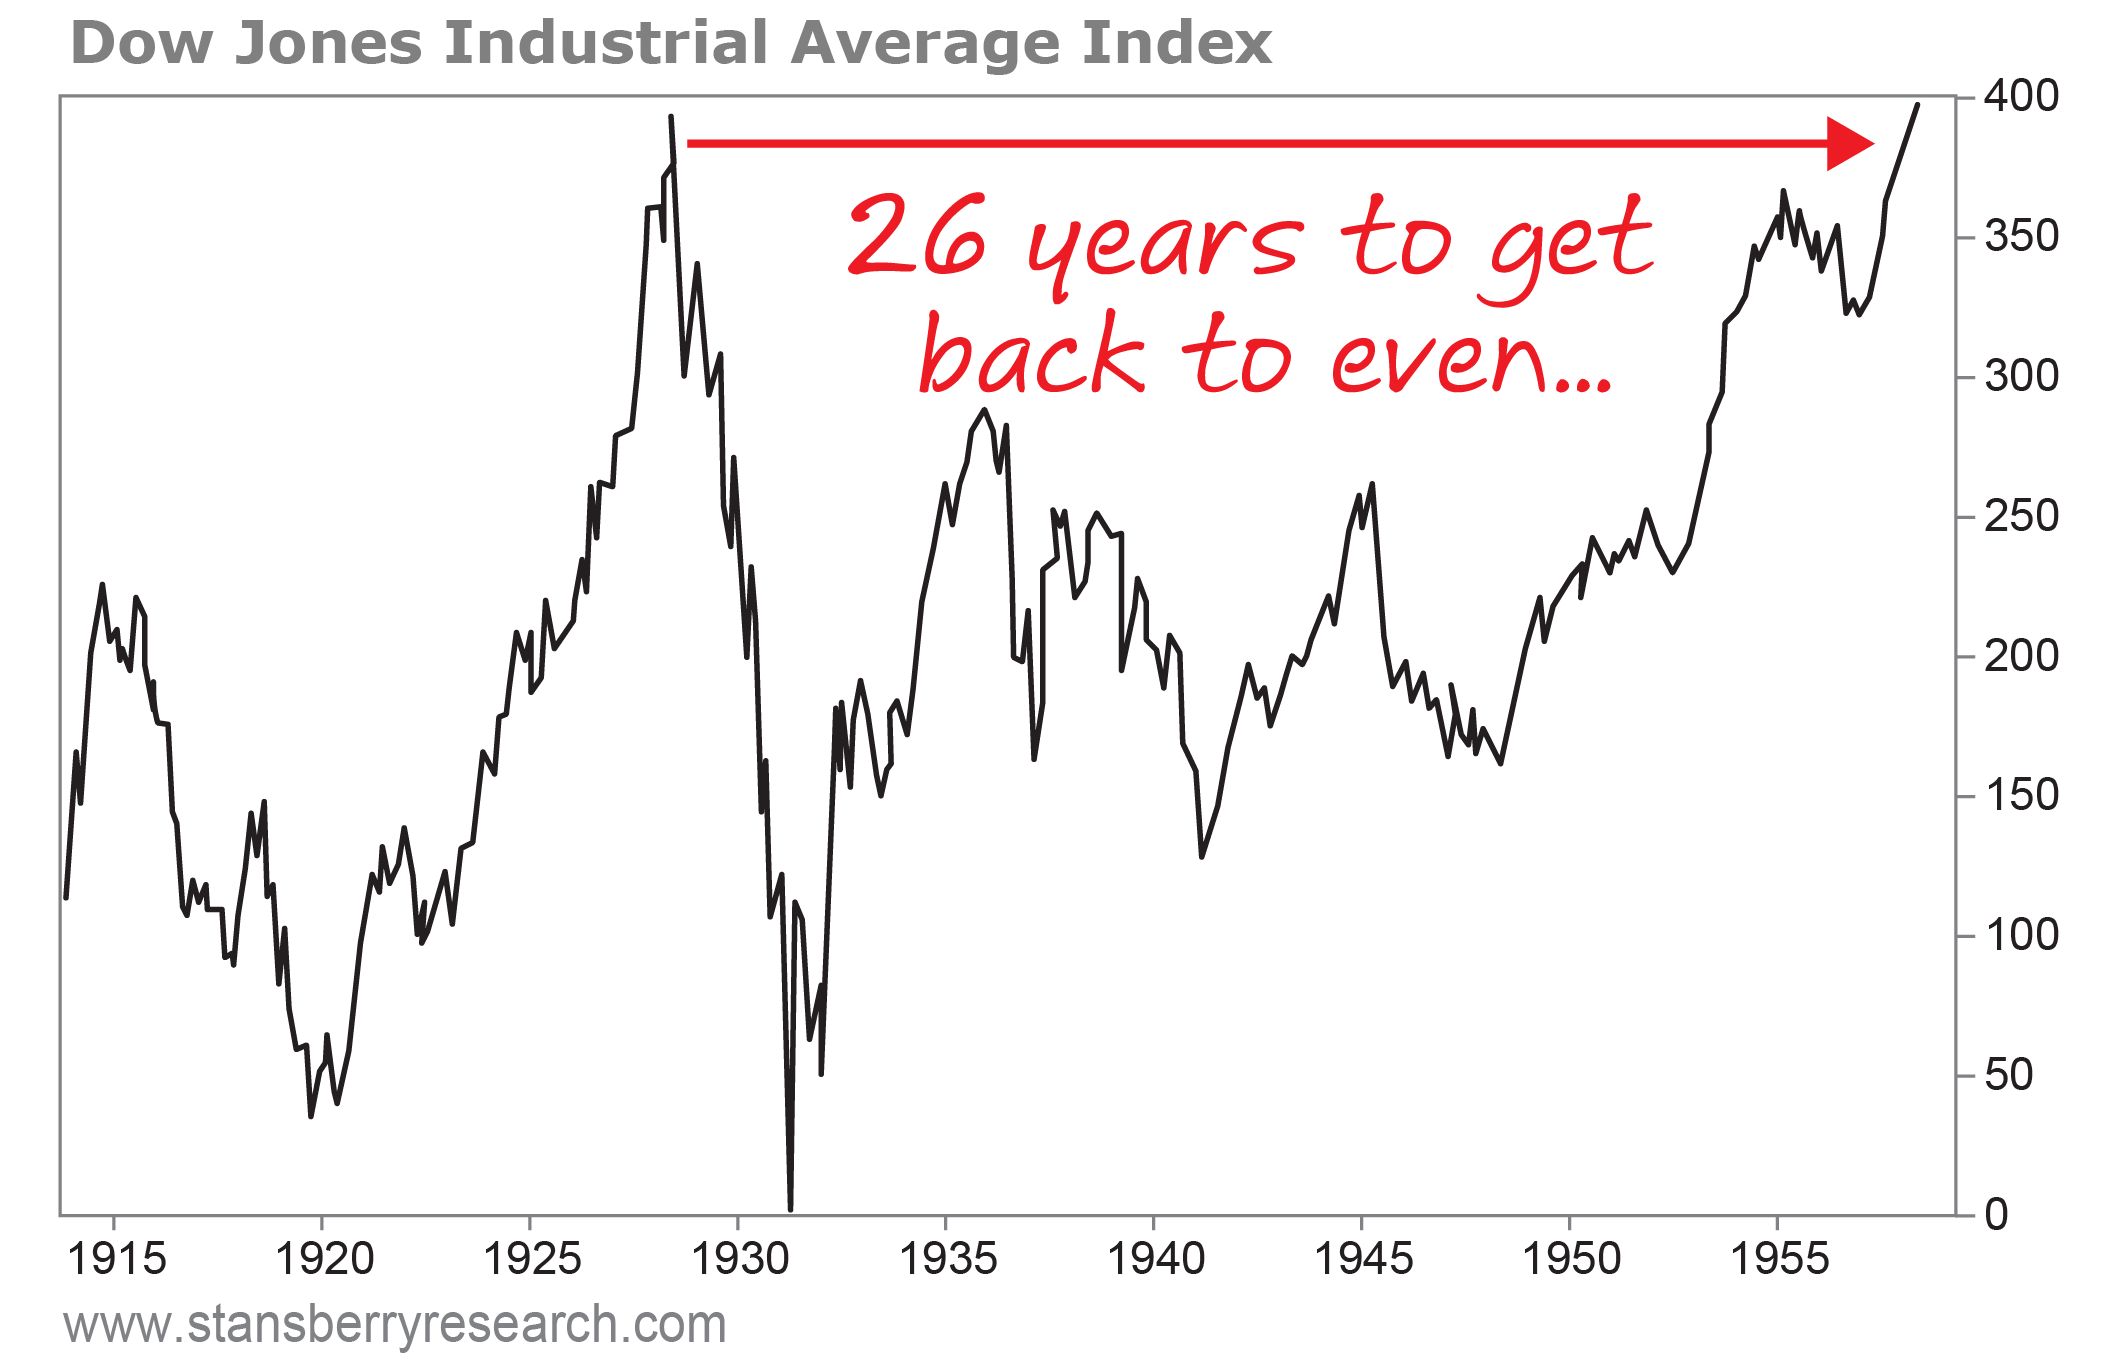 7 dow jones industrial average index copy 3g after the bubble burst in 1929 it took 26 years to recover and the average buy and hold investor never got back to even biocorpaavc Images